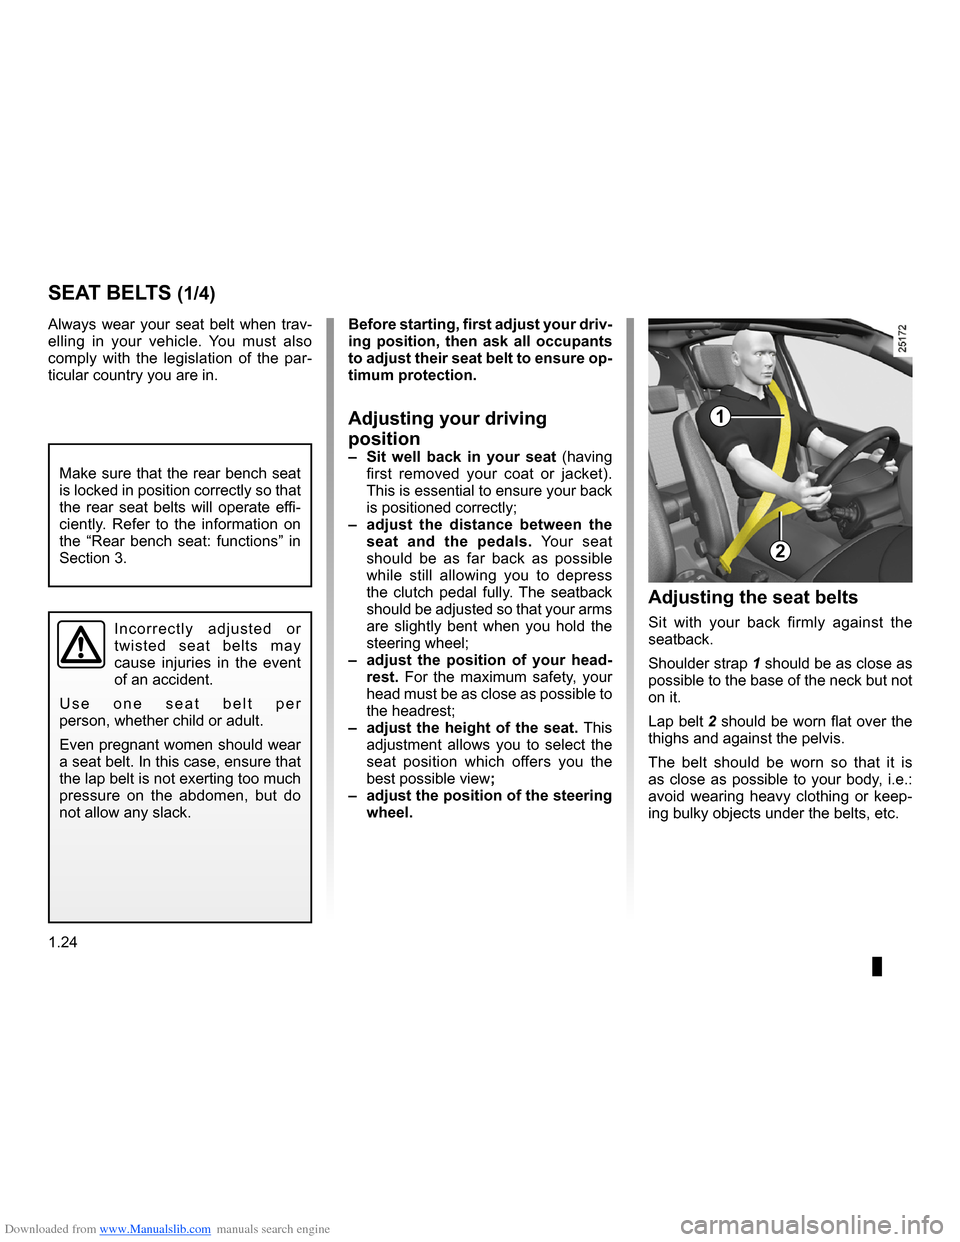 RENAULT CLIO 2009 X85 / 3.G Owners Manual Downloaded from www.Manualslib.com manuals search engine  seat belts ..............................................(up to the end of the DU)adjusting your driving position  ..............(up to the en